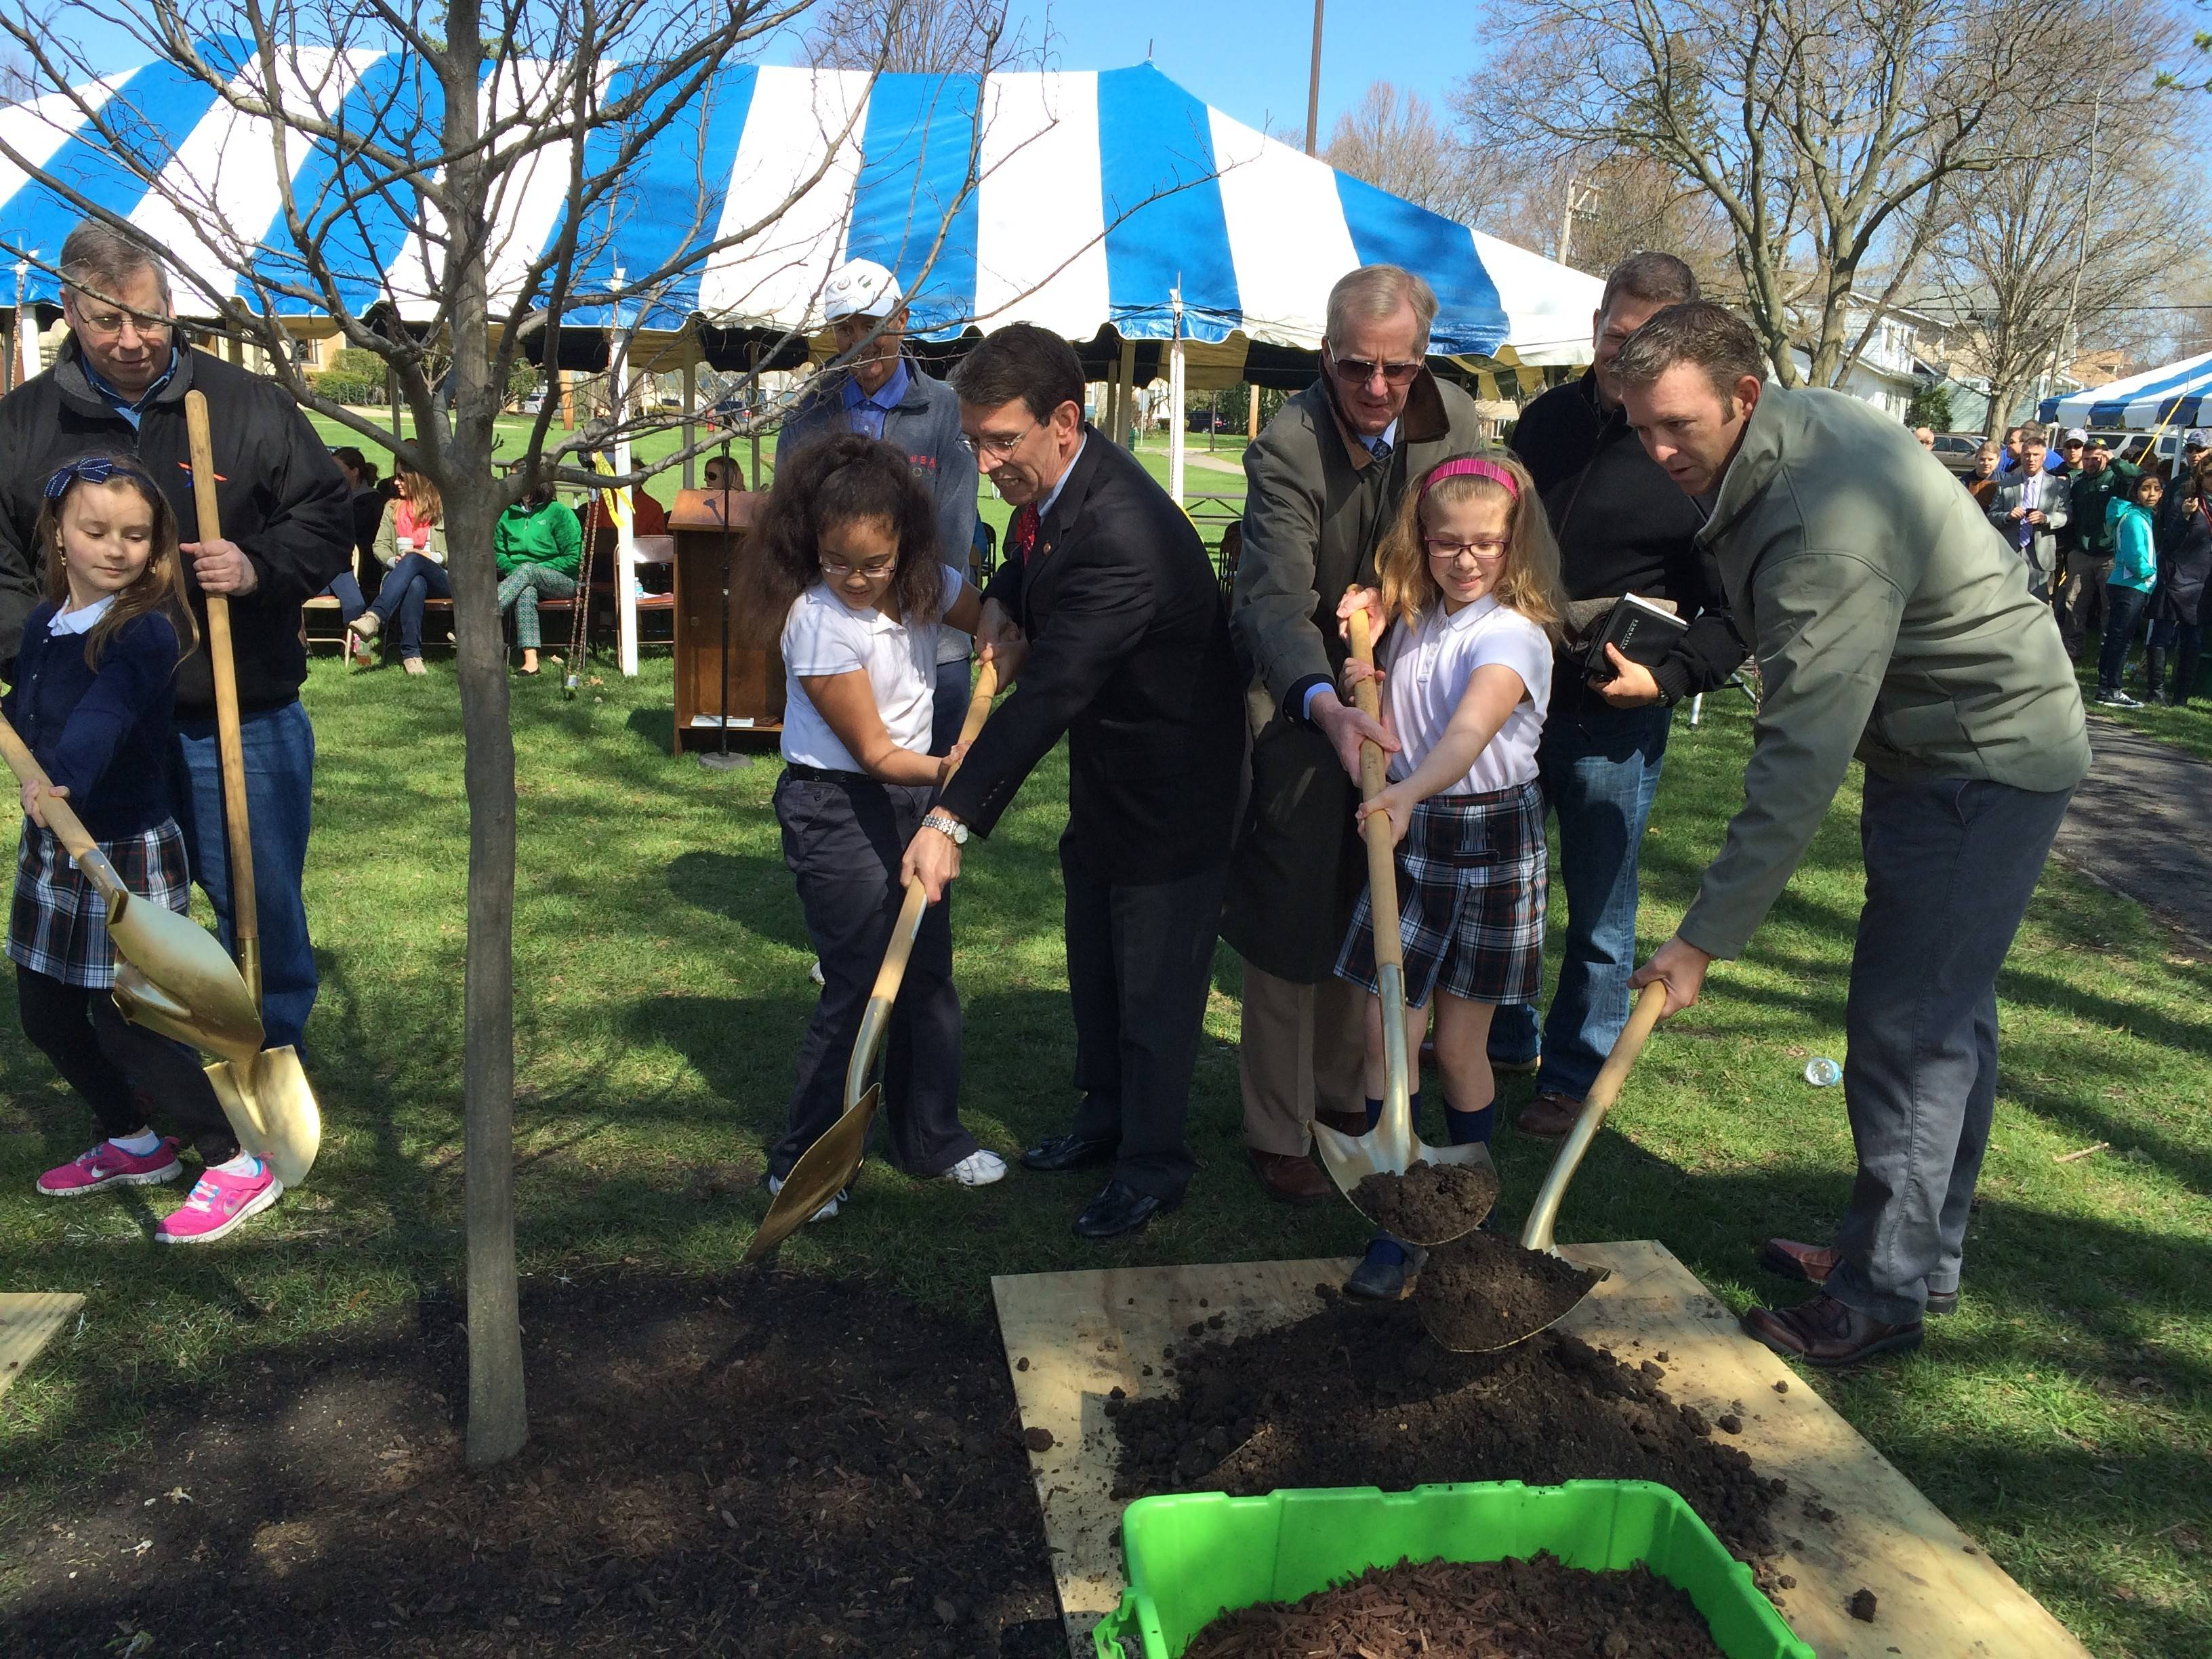 St. James Elementary students Clarise Chambers and Gabriella Wolf help Mayor Tom Hayes, Village Manager Bill Dixon and park district Commissioner Tim Gelinas plant a new tree in Recreation Park for Arbor Day in Arlington Heights on Friday.